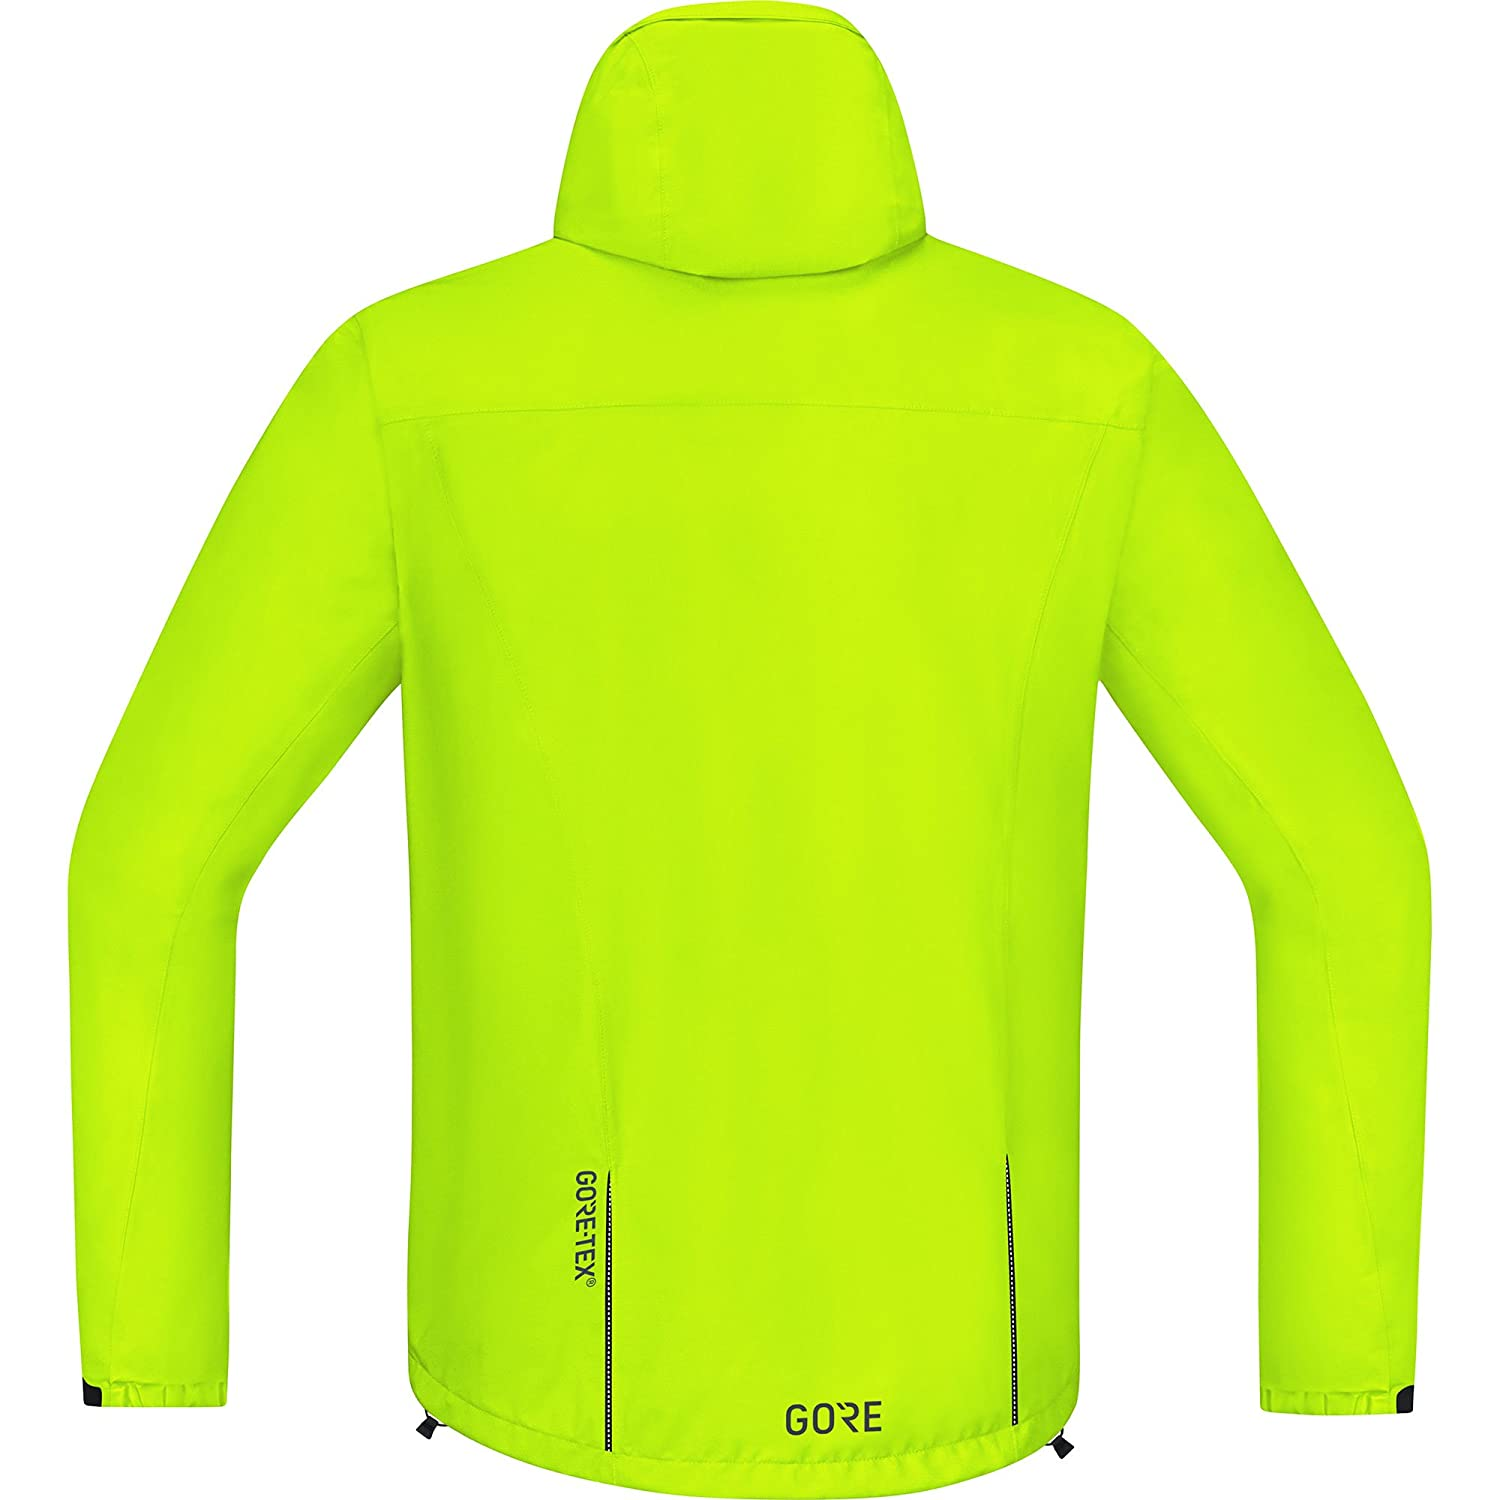 Amazon.com: GORE Wear Mens Waterproof Hooded Bike Jacket, GORE Wear C3 GORE Wear -TEX Paclite Hooded Jacket, 100036: Sports & Outdoors